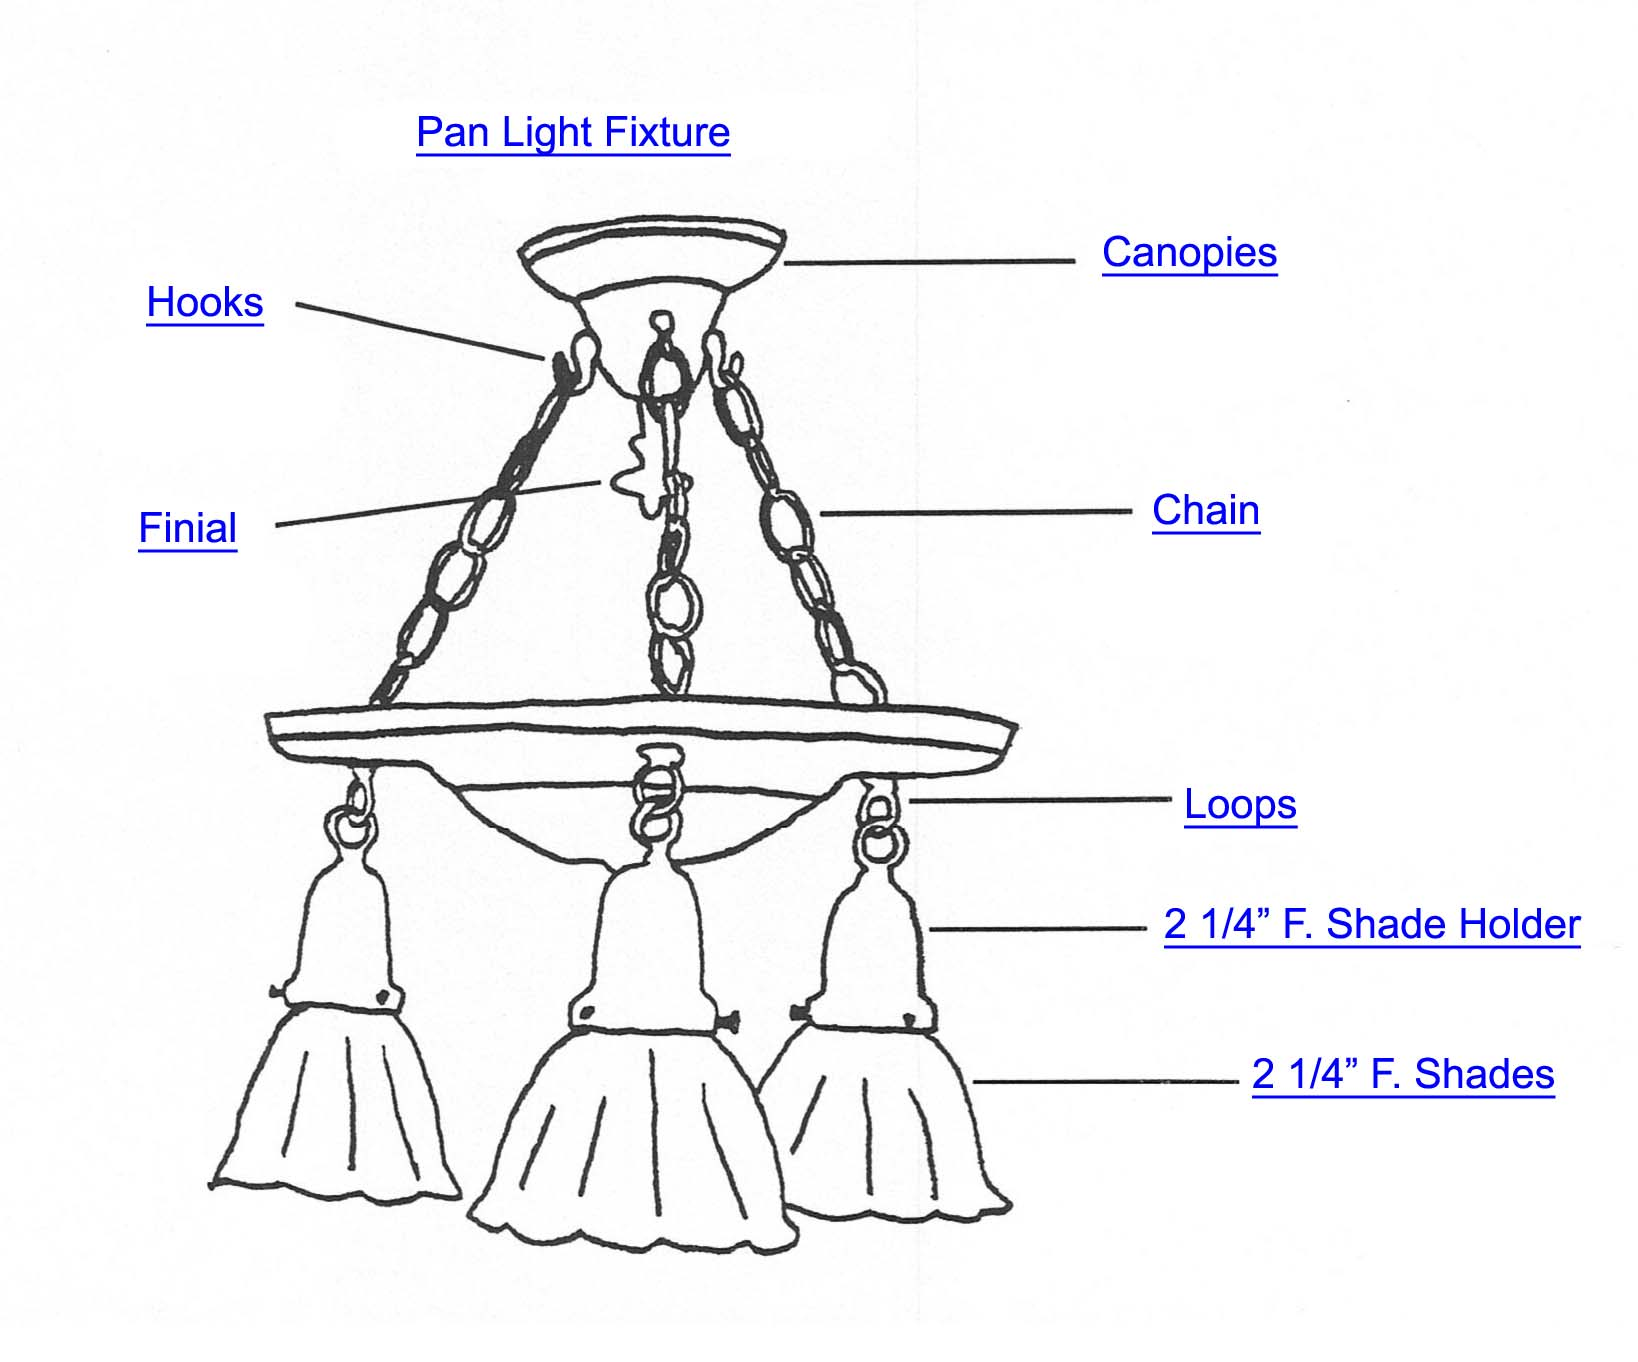 Pan Lamp Part Index